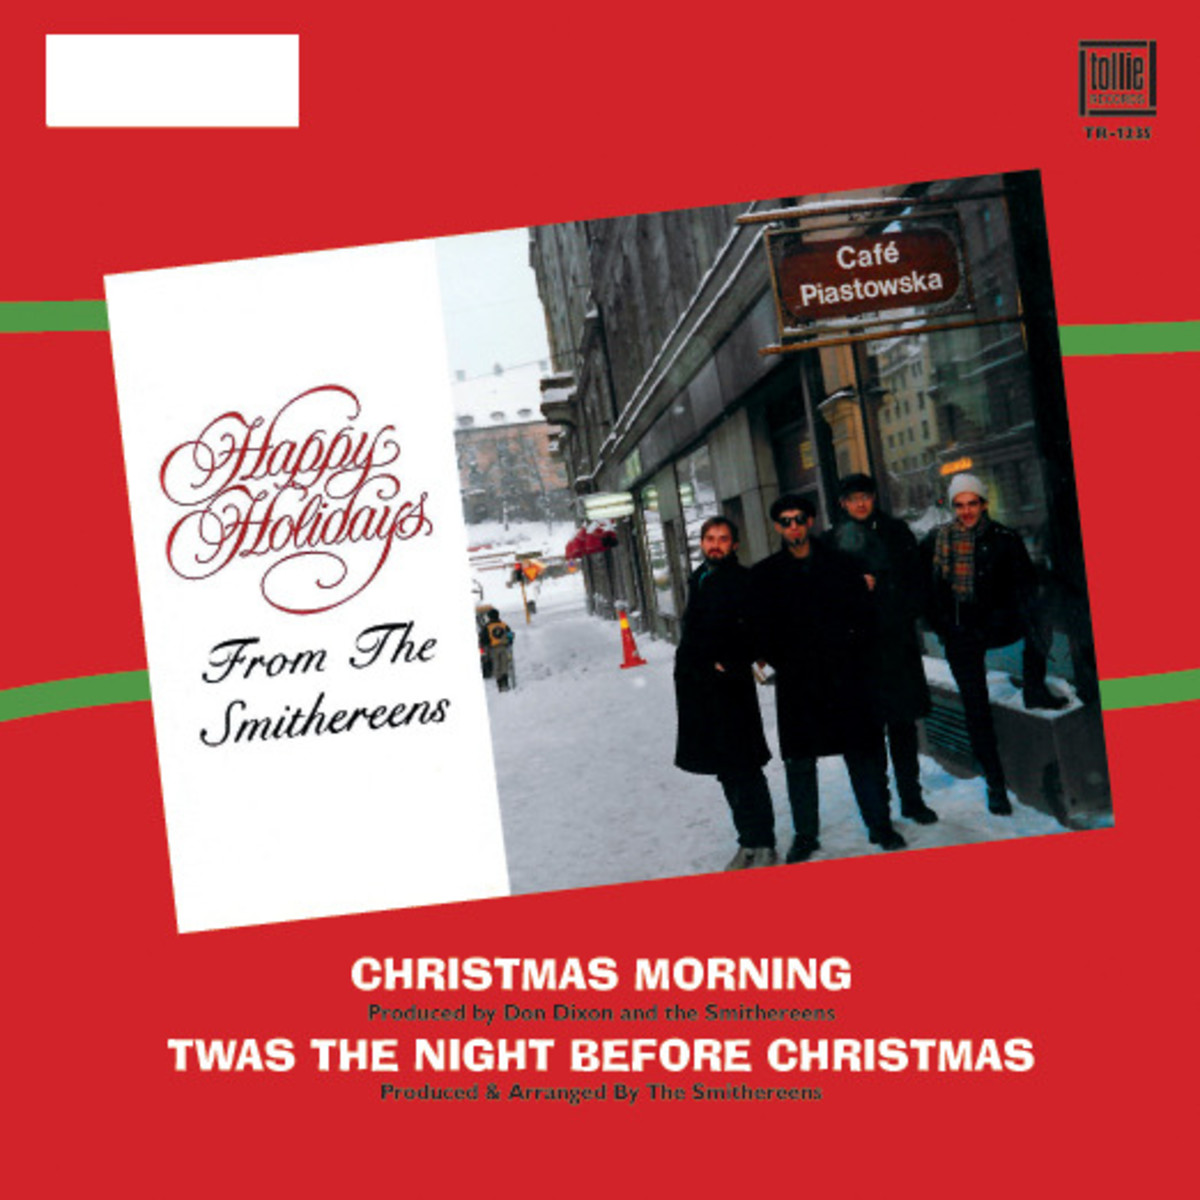 """The back cover of The Smithereens' """"Christmas Morning"""" single is shown here."""